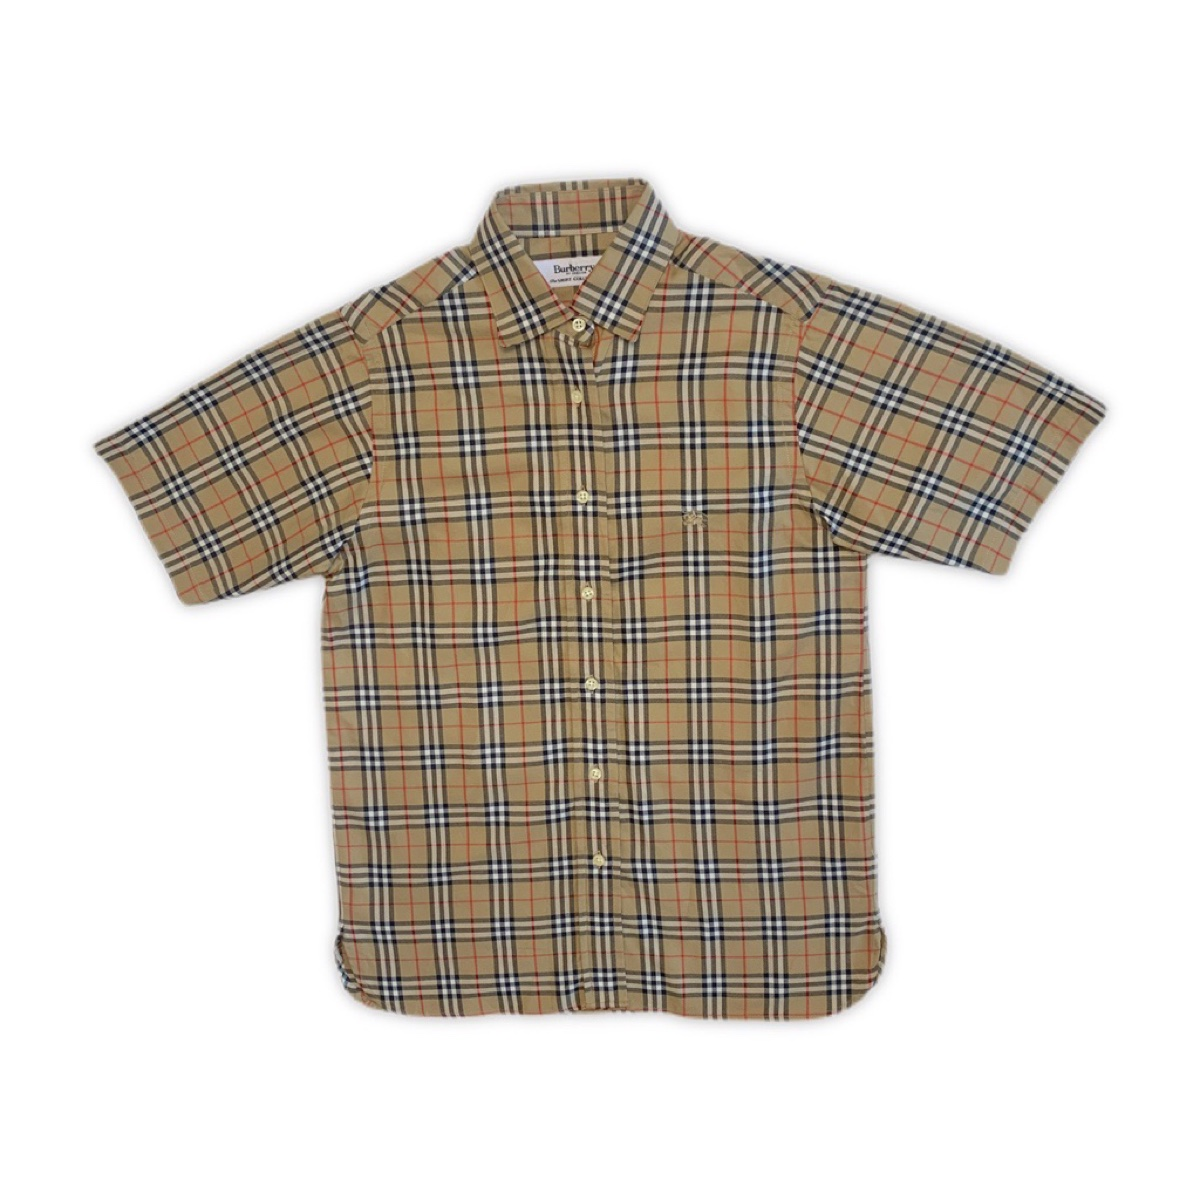 Vintage Burberry Nova Check SS Short Sleeve Shirt